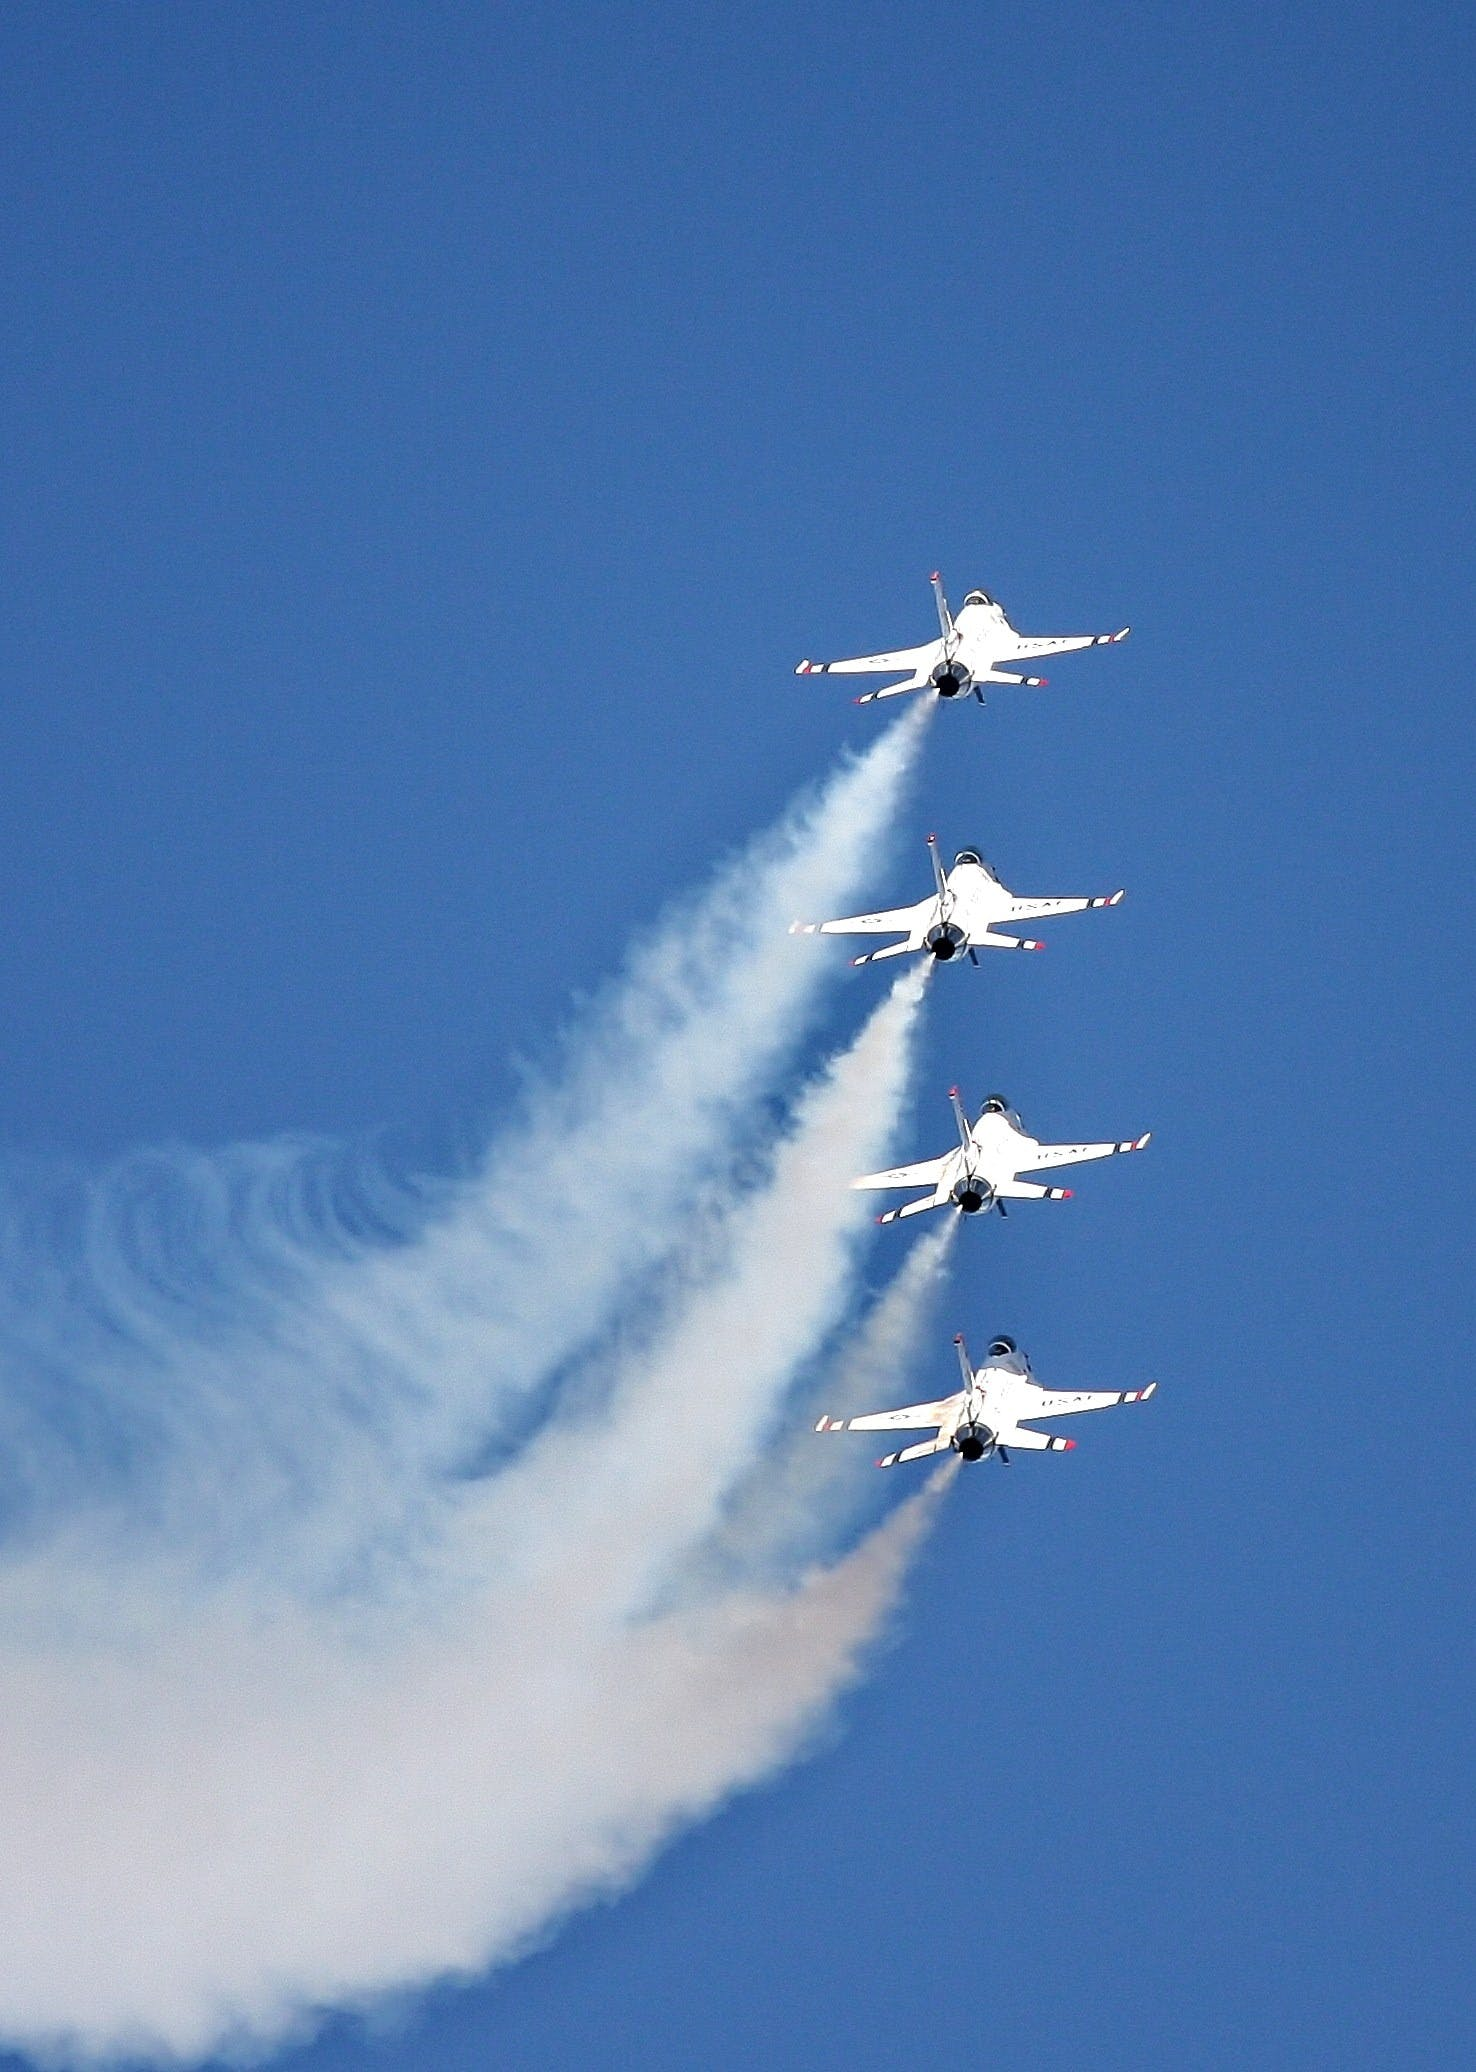 4 White Jet Flying on Sky at Daytime